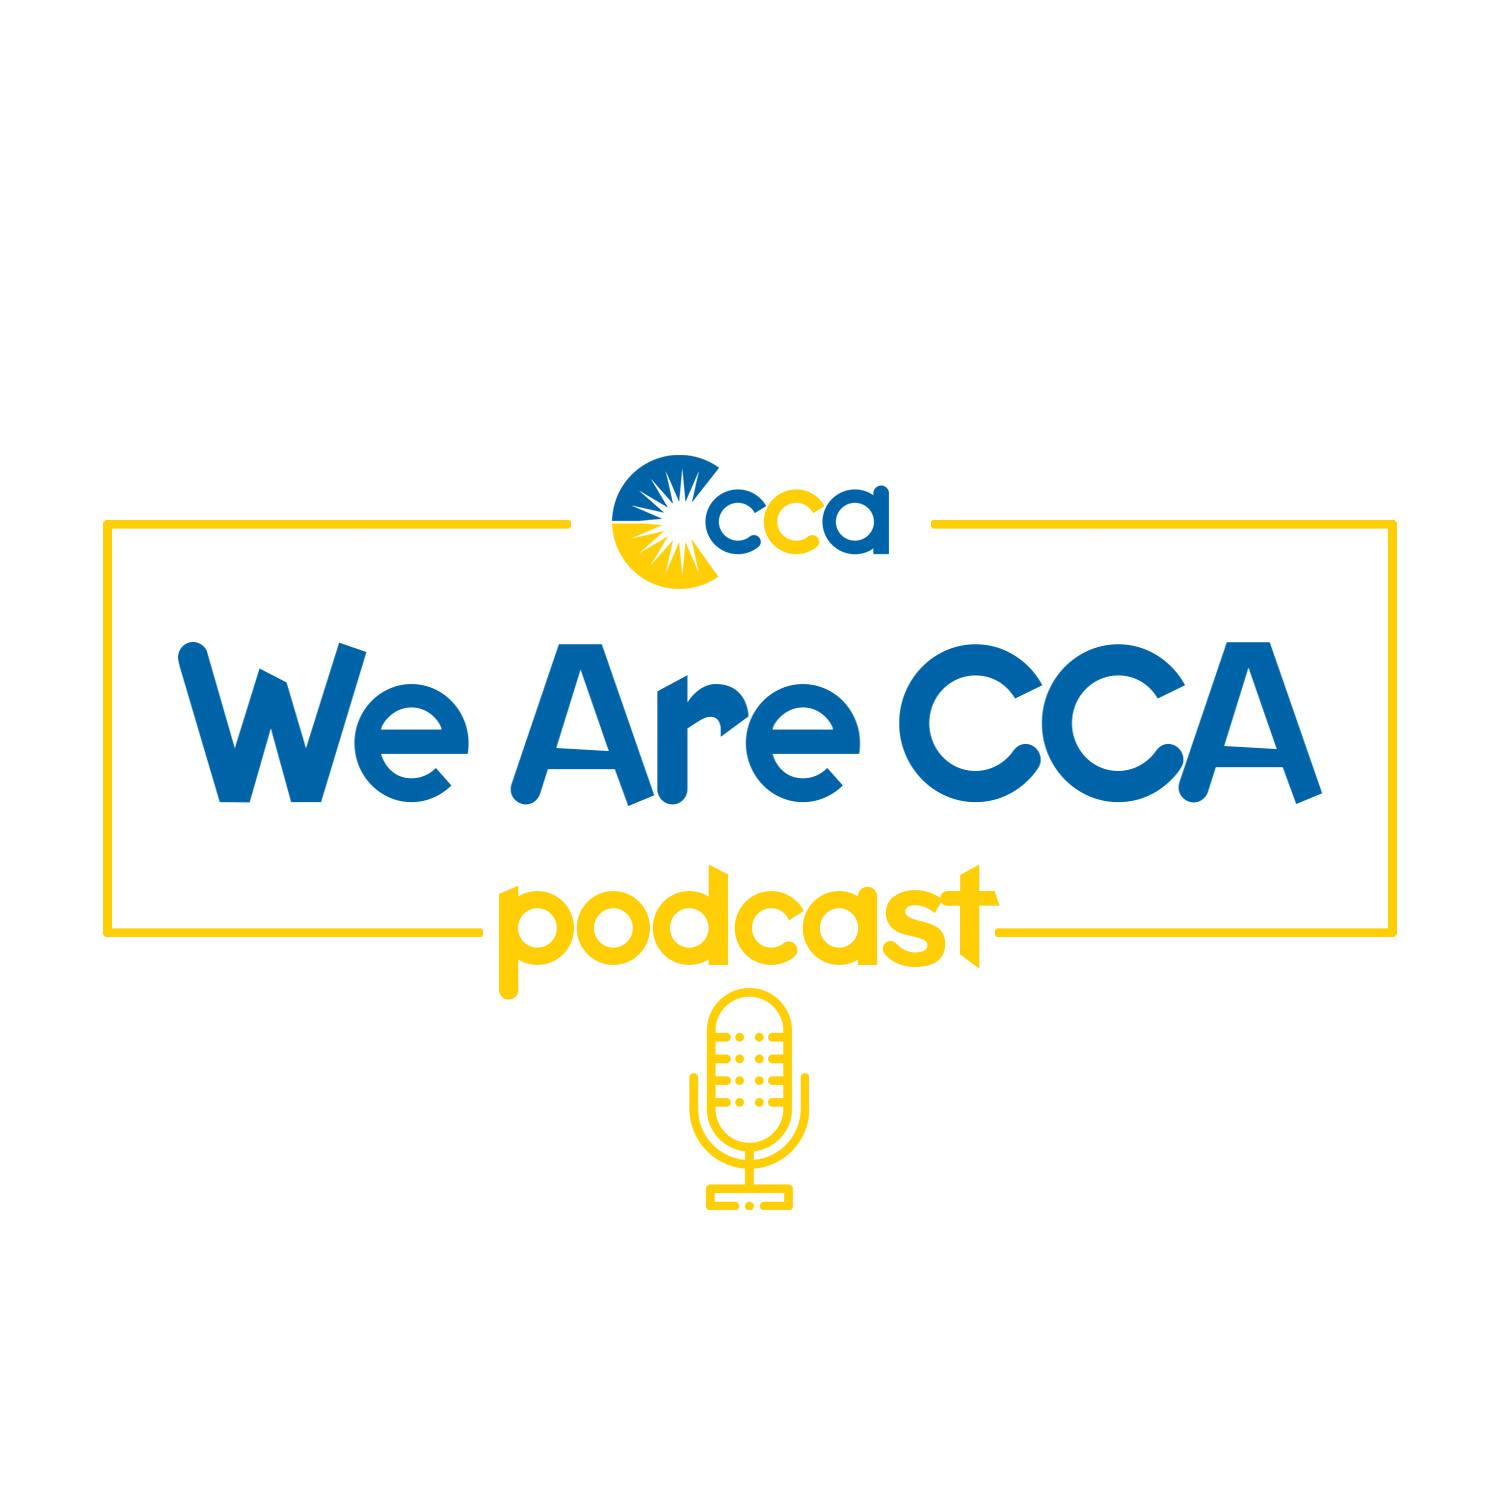 We Are CCA podcast logo